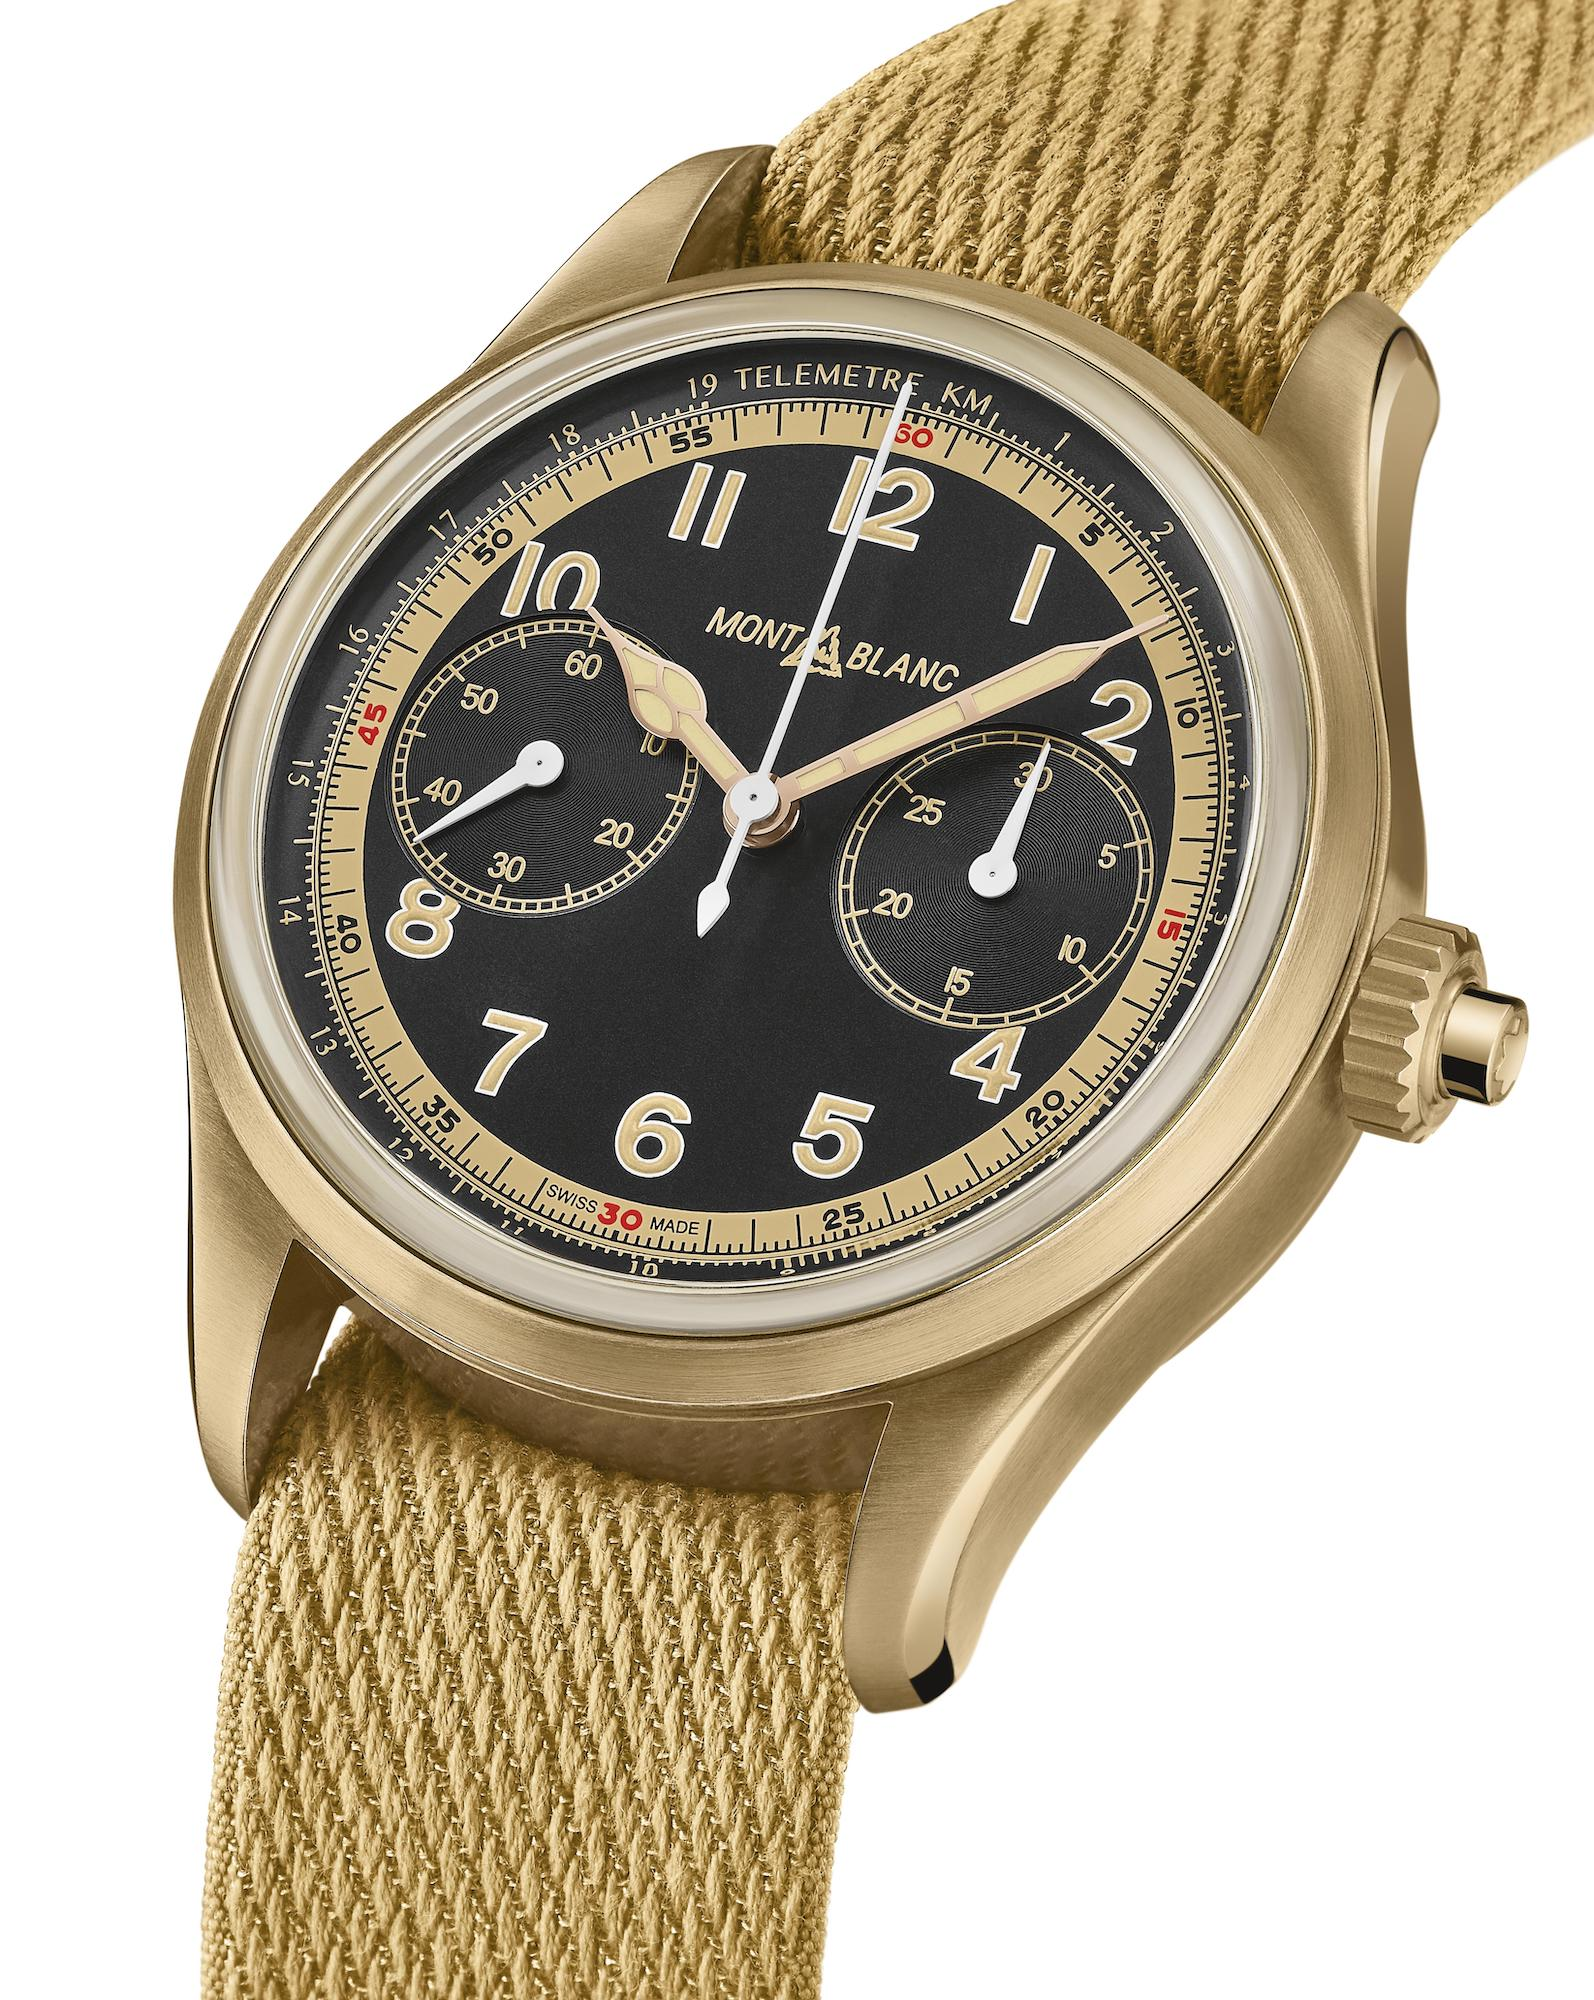 Montblanc 1858 Monopusher Chronograph Limited Edition 1858 Ref 125583